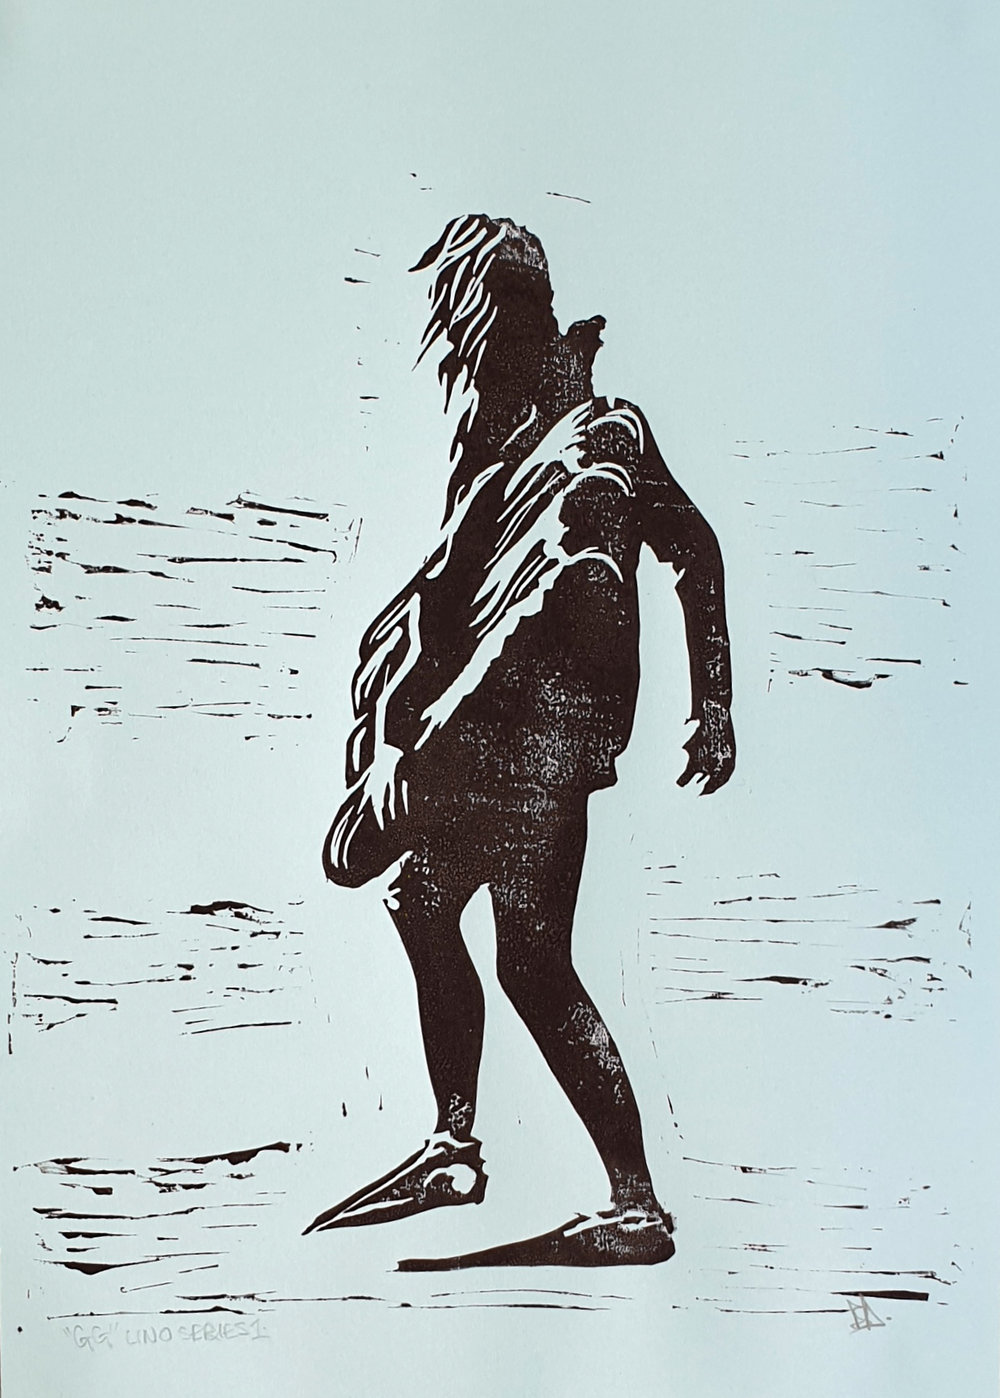 Bryn Dampney George Greenough Surfmat Lino Print